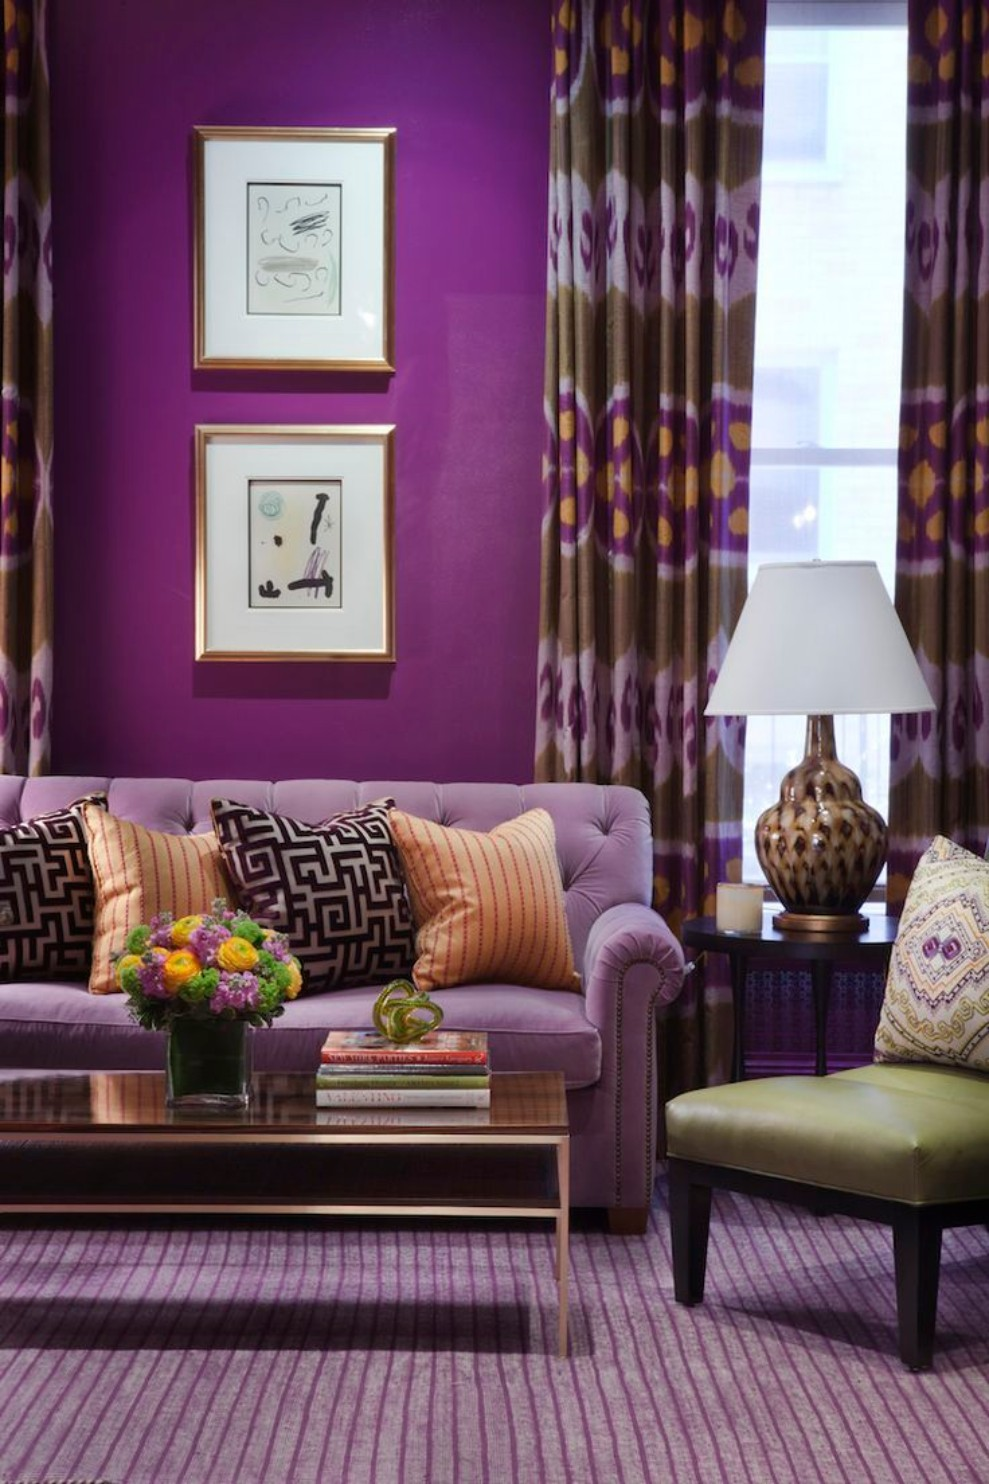 Pantone Color Of The Year 2018 Meet Ultra Violet 18 3838